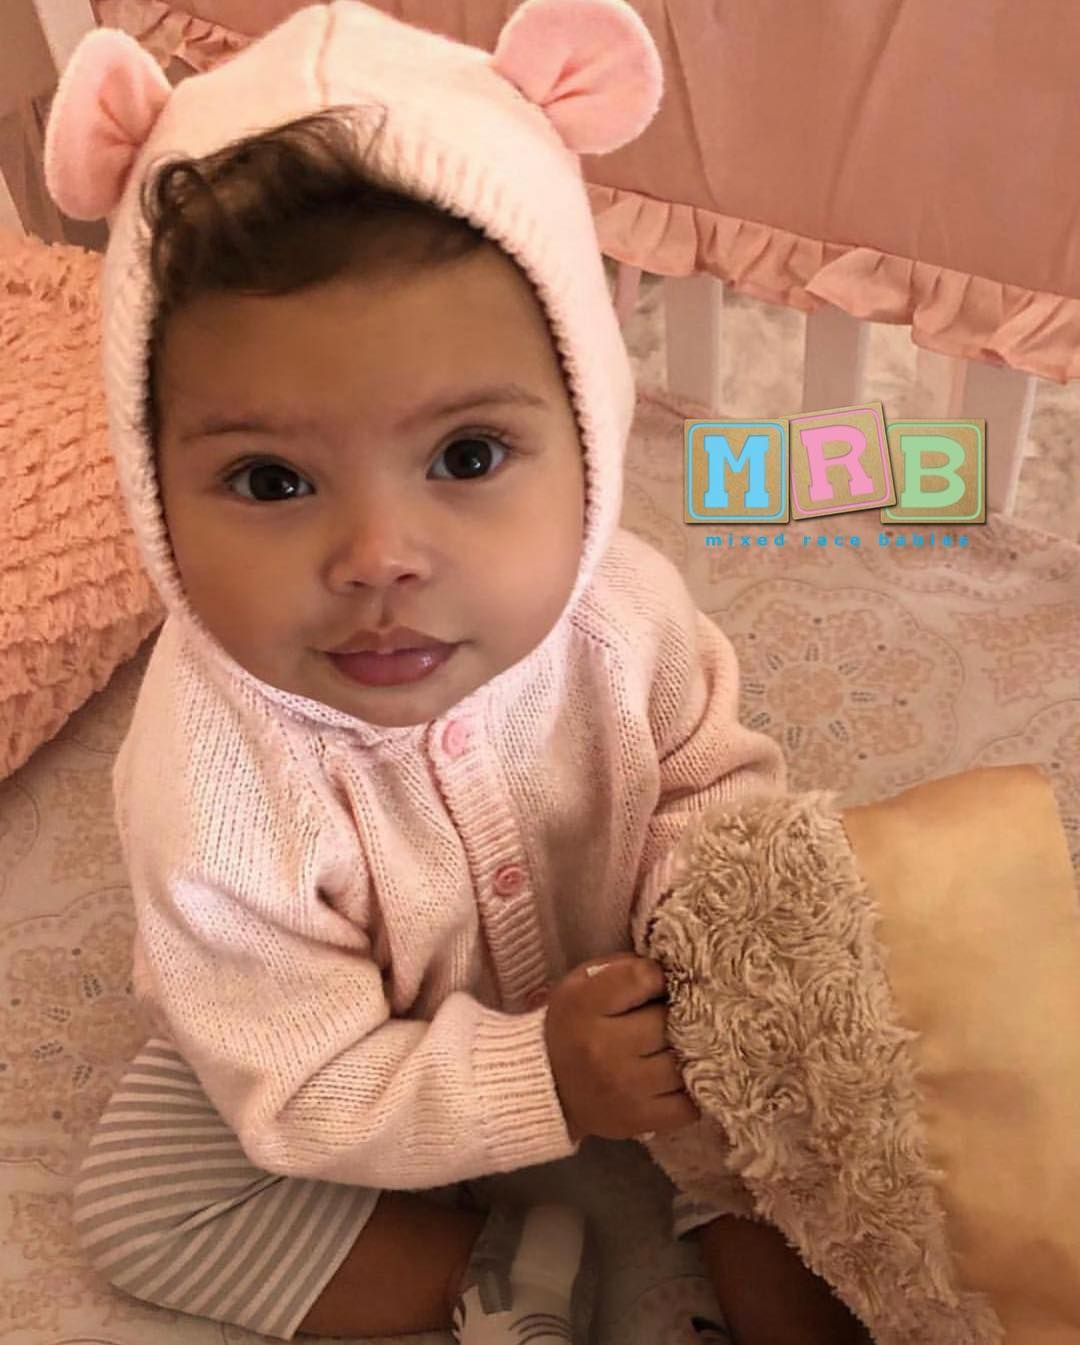 """dda68ab42 Mixed Race Babies on Instagram: """"Dad: African American Mother: Caucasian •  Jovi Londyn • Submission By: Dad IG: @mrfortefied Mom IG: @swaggb305 #MRB  ..."""